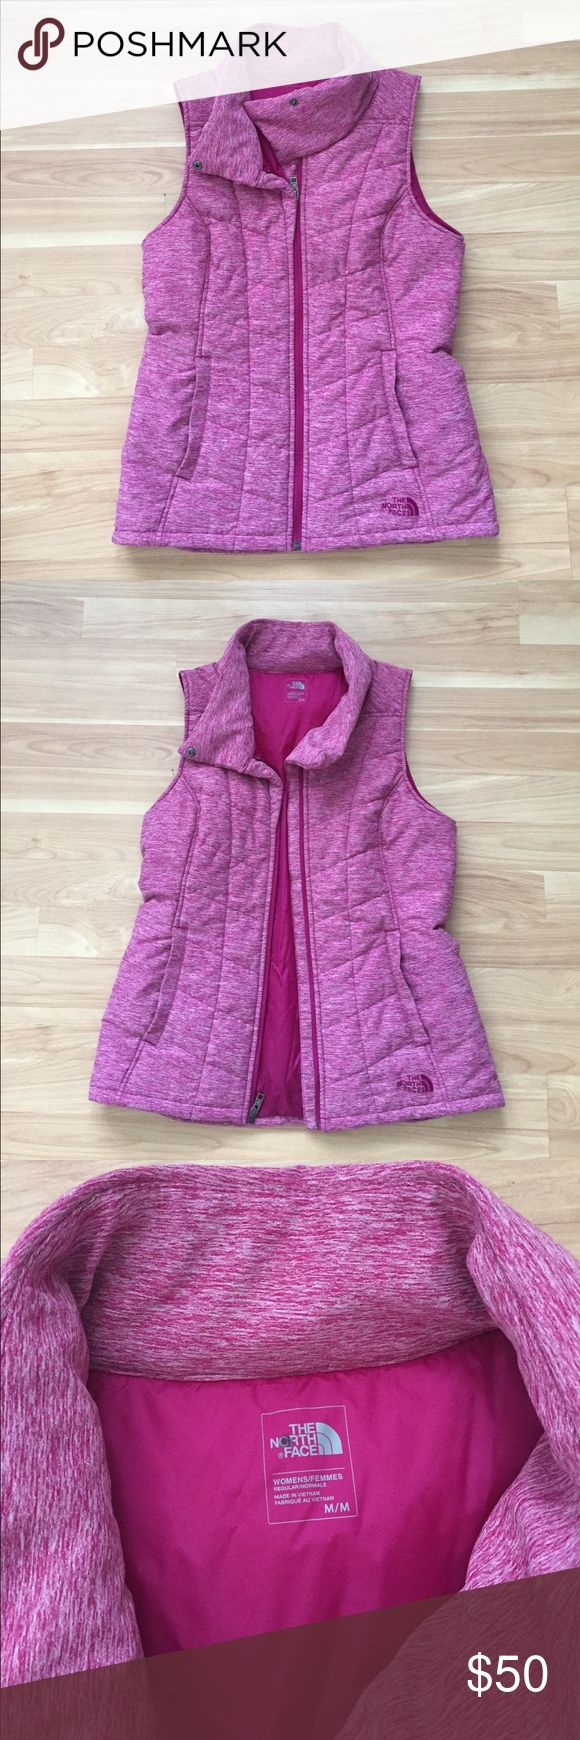 The Northface pink insulated vest NEVER WORN. Polyester/ elastase shell with nylon lining. Collared vest with a stylish closure at top to wear open or closed. In perfect condition. Disclosure: I bought this from The North Face outlet store on sale for $70. The North Face Jackets & Coats Vests